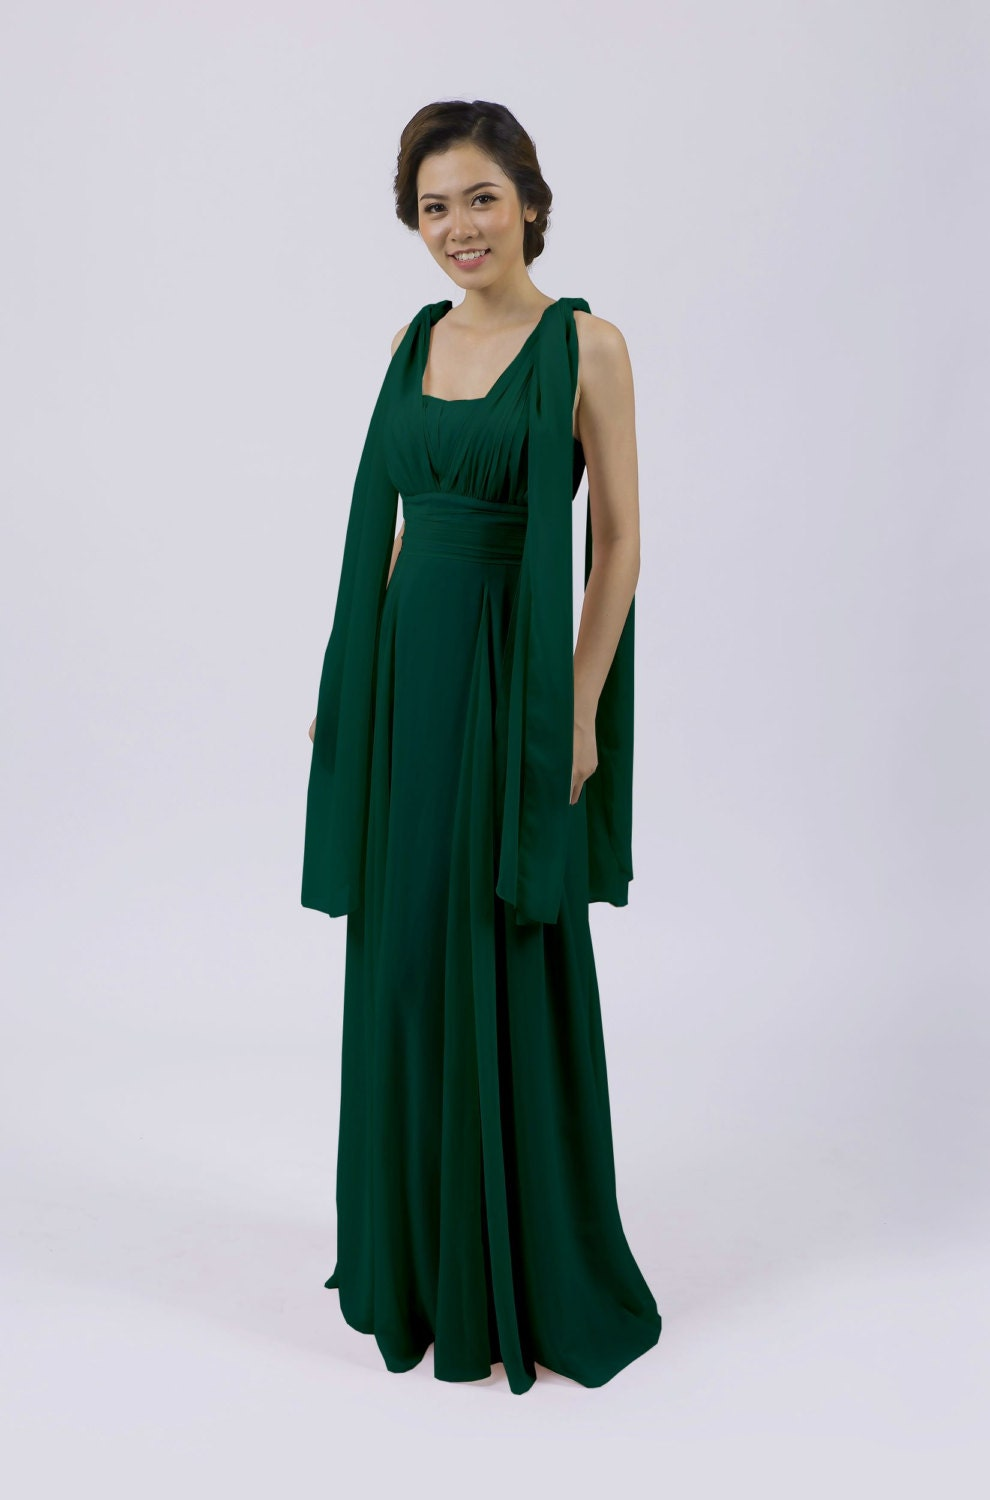 Matchimony Forest Green Multiway Long BridesmaidProm Dress (12 Styles)